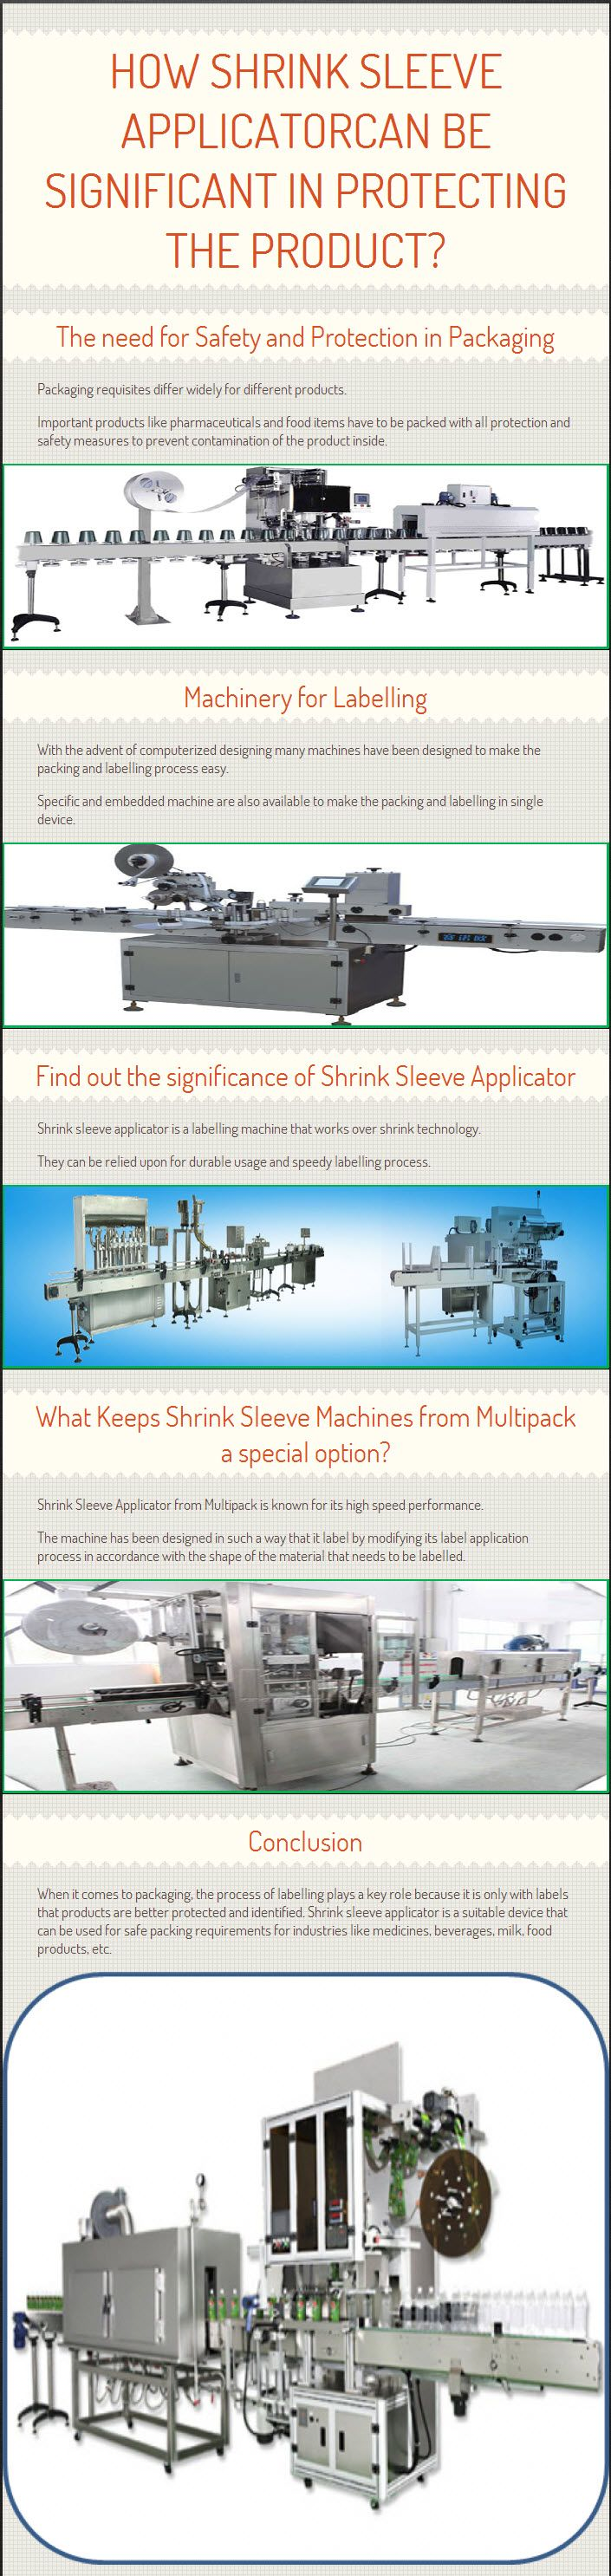 Find out what are the significant features of labelling technology. Learn more about the shrink sleeve applicator machine and its advantages in labelling process. Find out what is significant in http://www.multipackmachinery.com/shrink-sleeve-applicator-machine/. Shrink Sleeve Applicator from Multipack is known for its high speed performance.